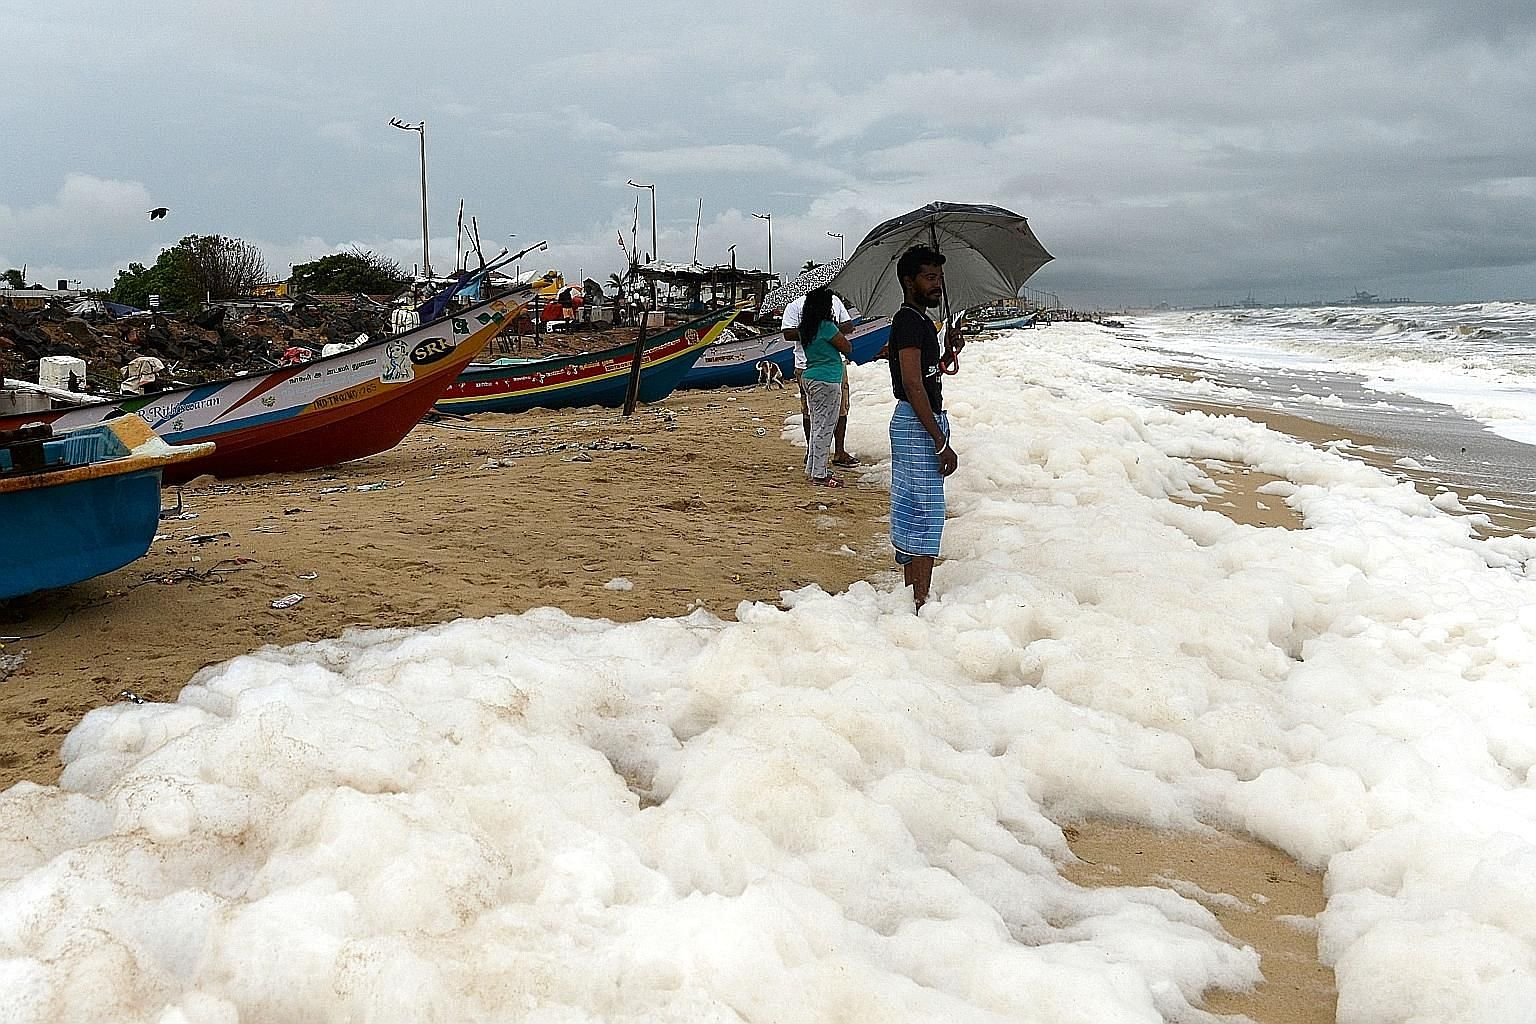 Foamy discharge, caused by pollutants, at a beach in Chennai on Dec 1. The report by the Global Alliance on Health and Pollution says India has seen increasing industrial and vehicular pollution from urban growth, while poor sanitation and contaminat